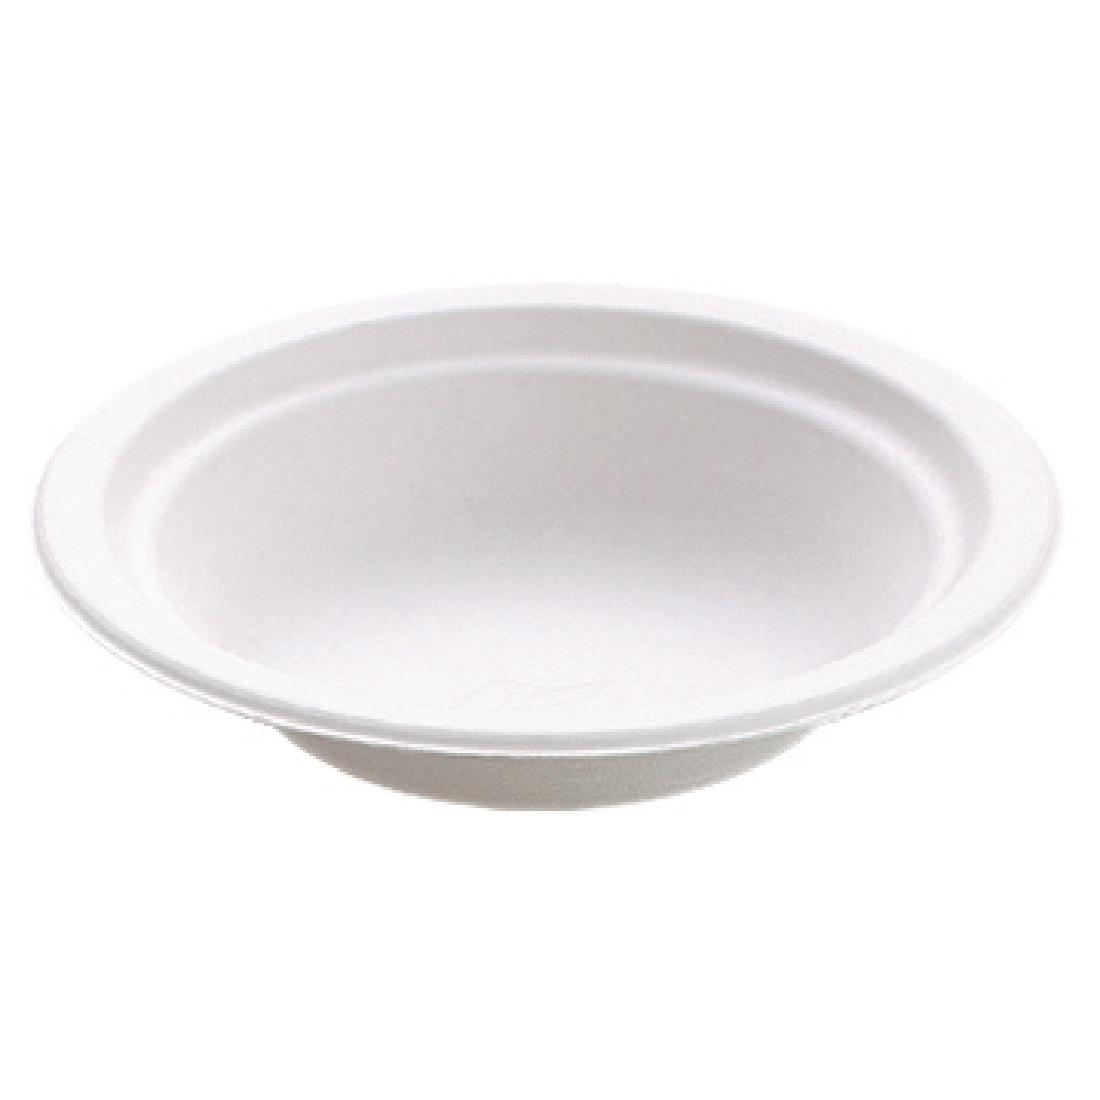 Image of Huhtamaki Compostable Moulded Fibre Chinet Bowls 16oz (Pack of 125) Pack of 125